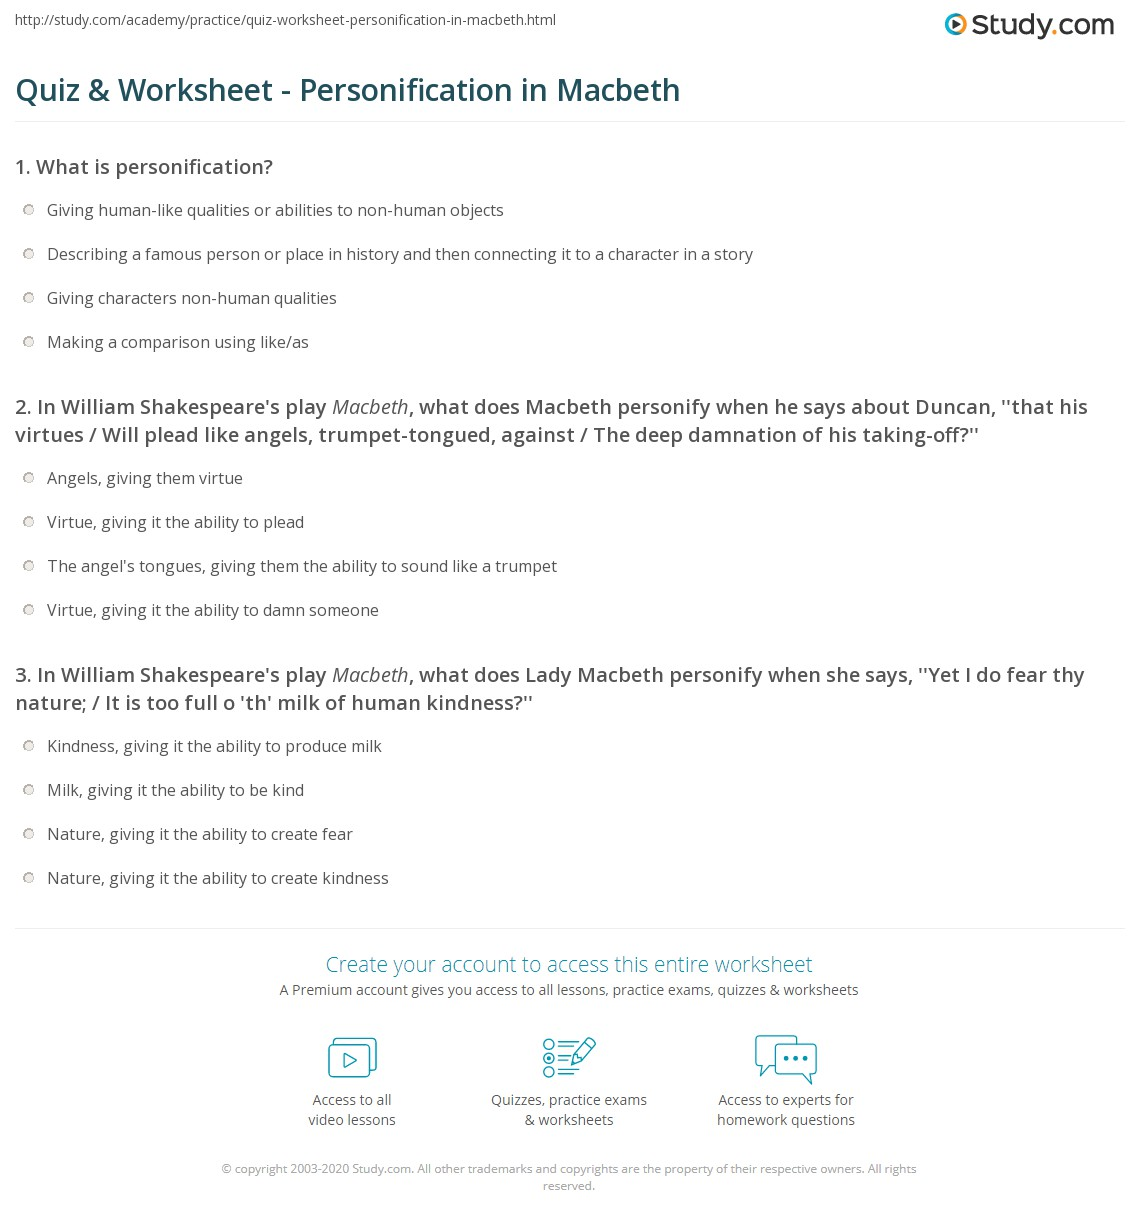 Worksheets Personification Worksheet worksheet personification worksheets fun study quiz in macbeth com print worksheet